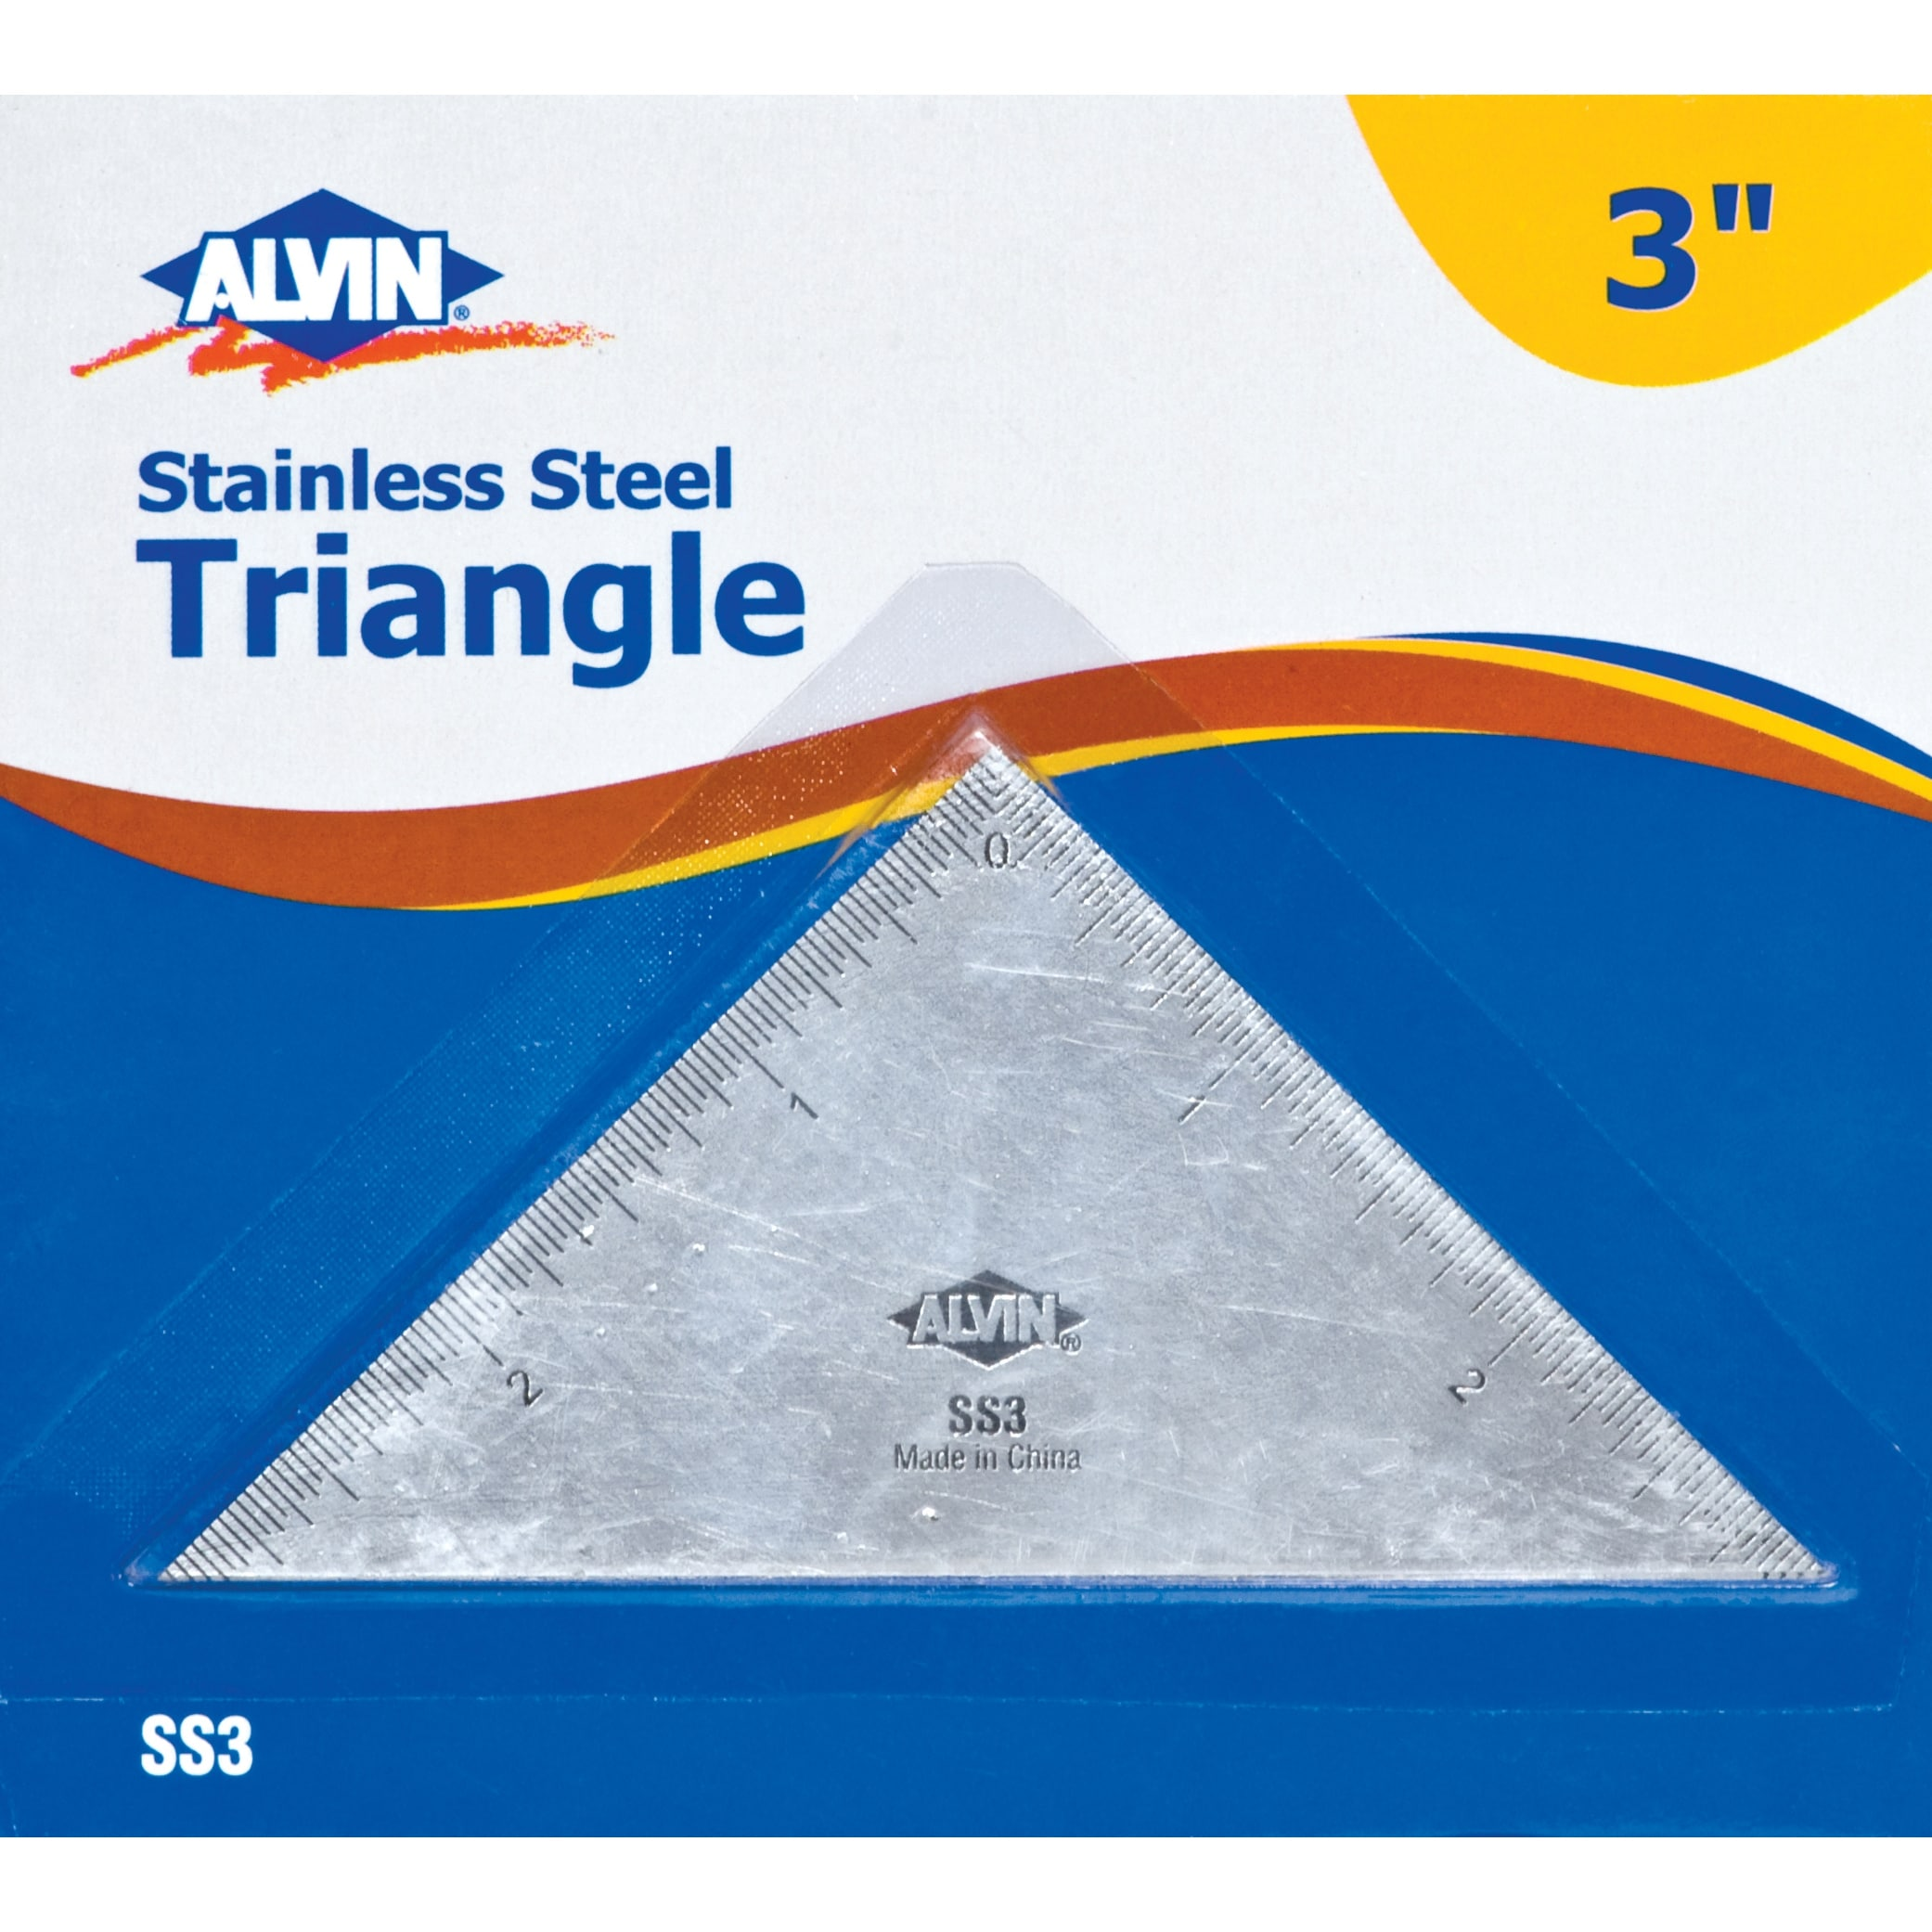 Alvin 3 Inches Triangle Stainless Steel Ruler